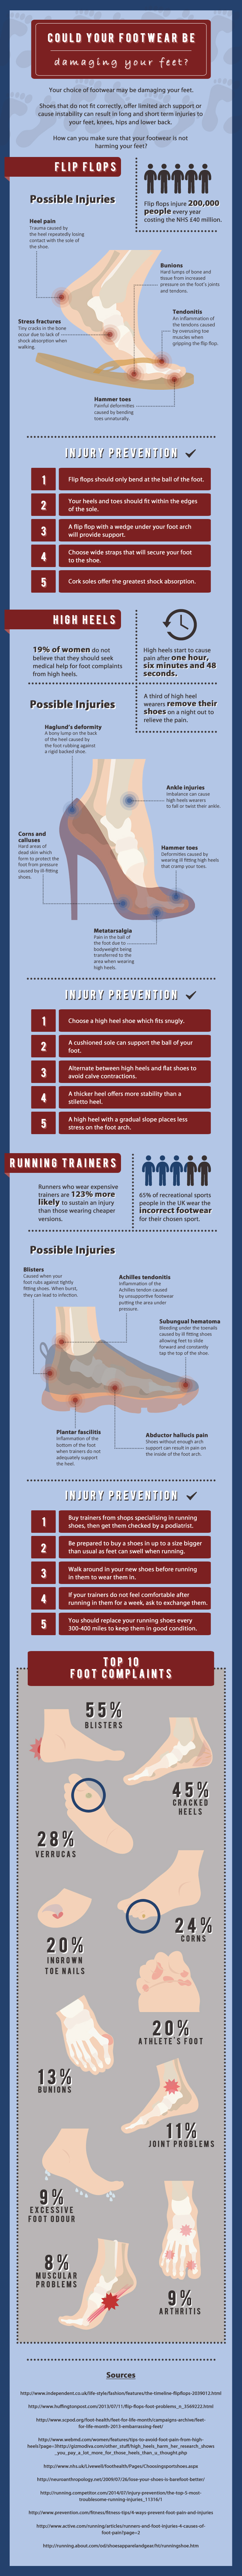 Could Your Footwear Be Damaging Your Feet?